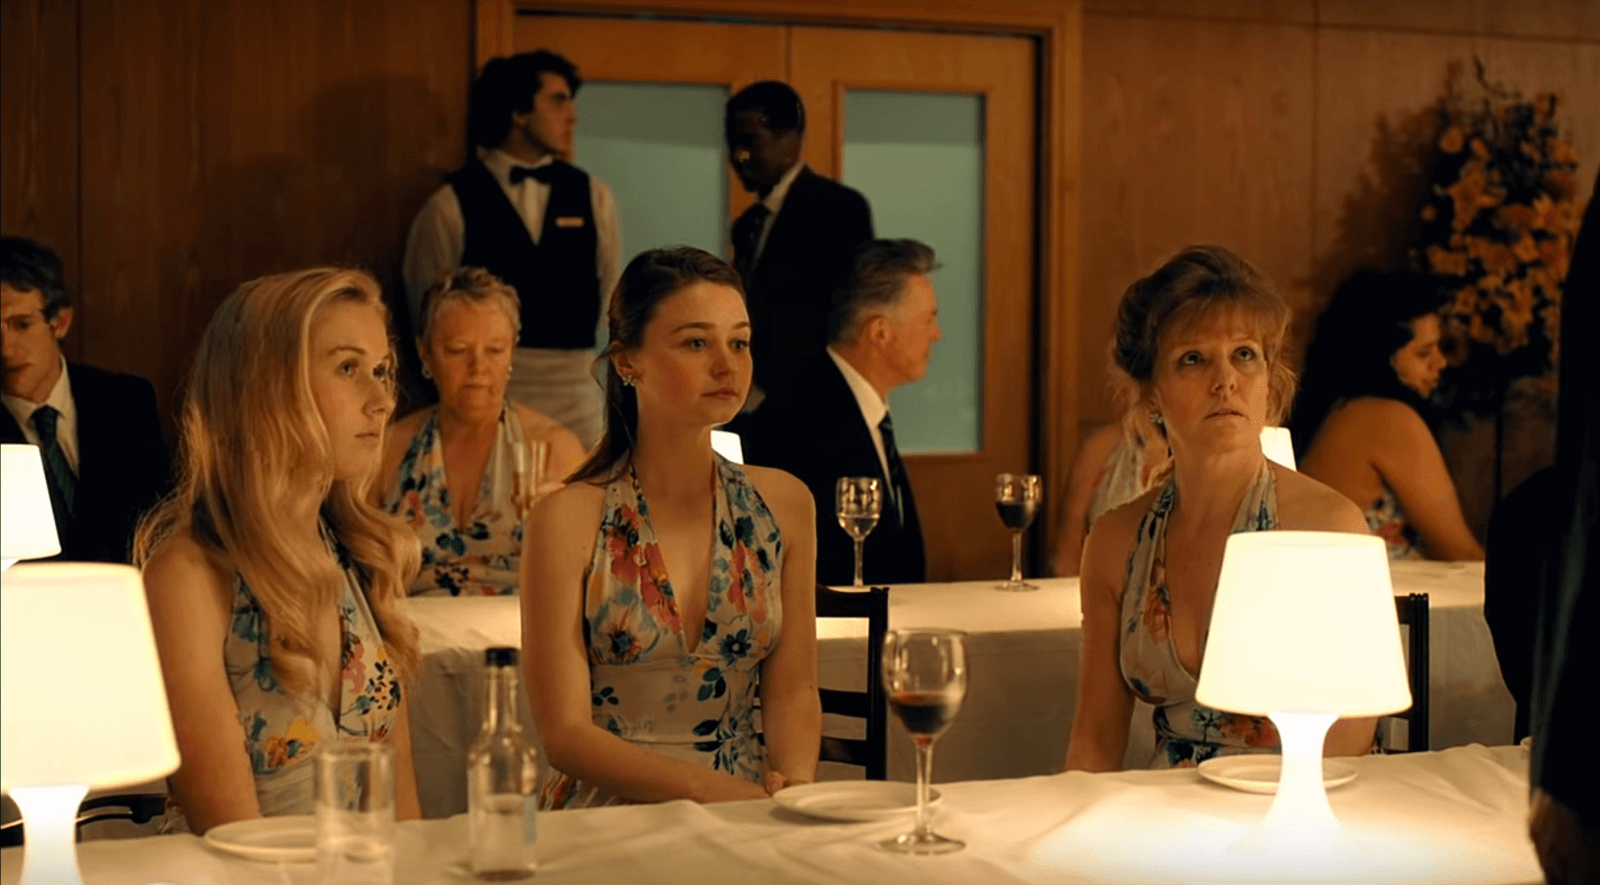 dystopian fashion in The Lobster